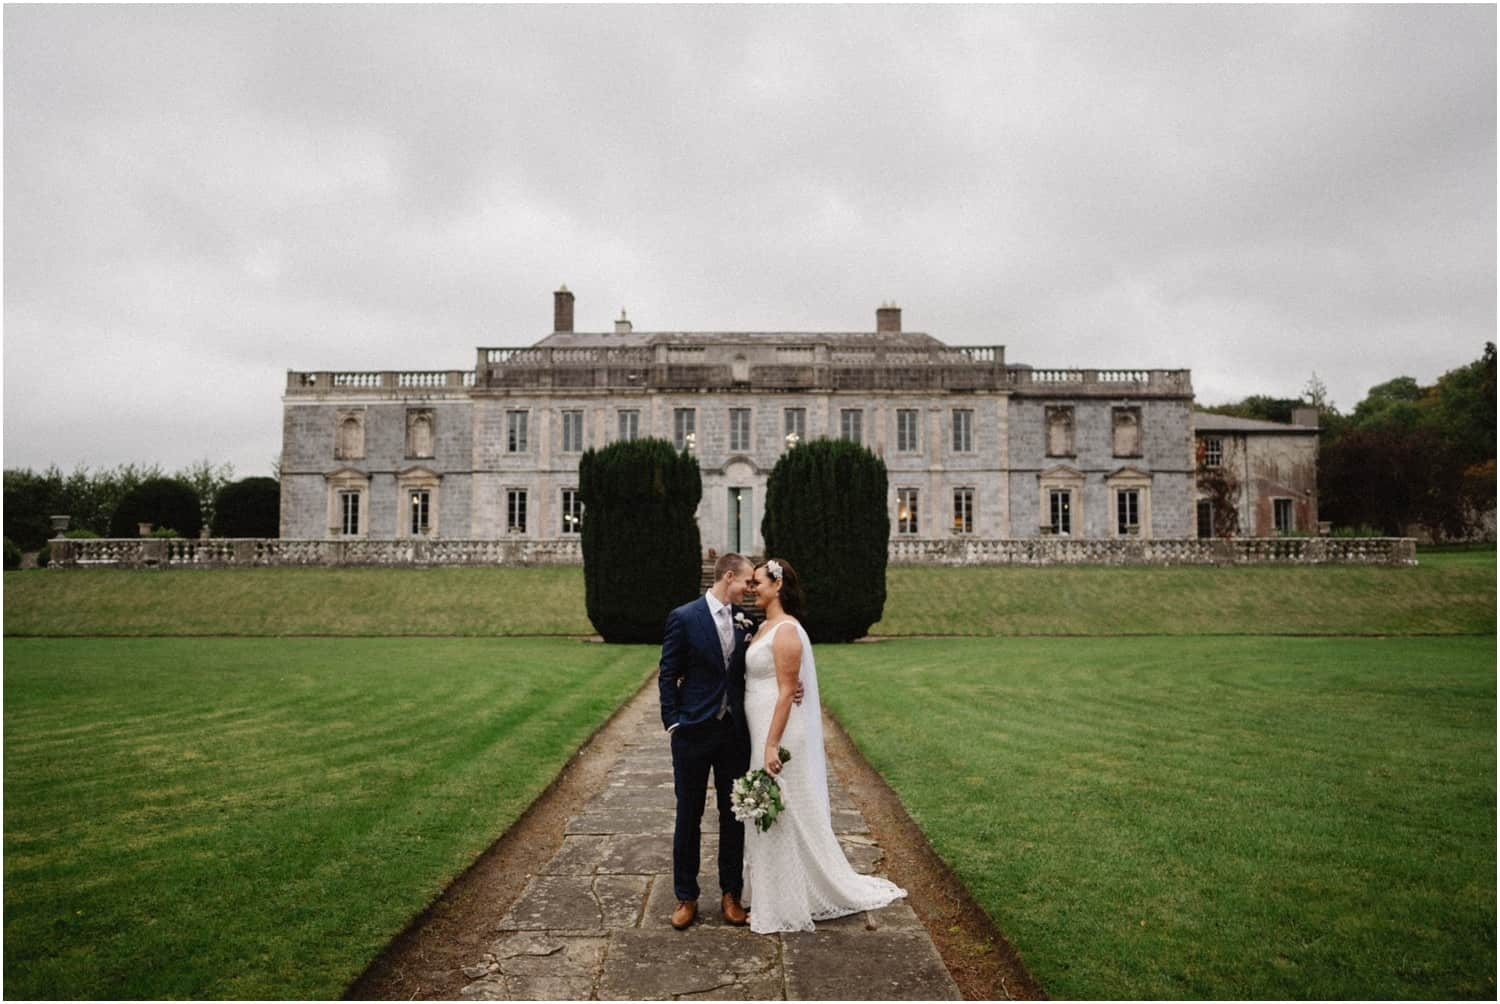 A newly married couple stand in front of the main building at their Gloster House wedding